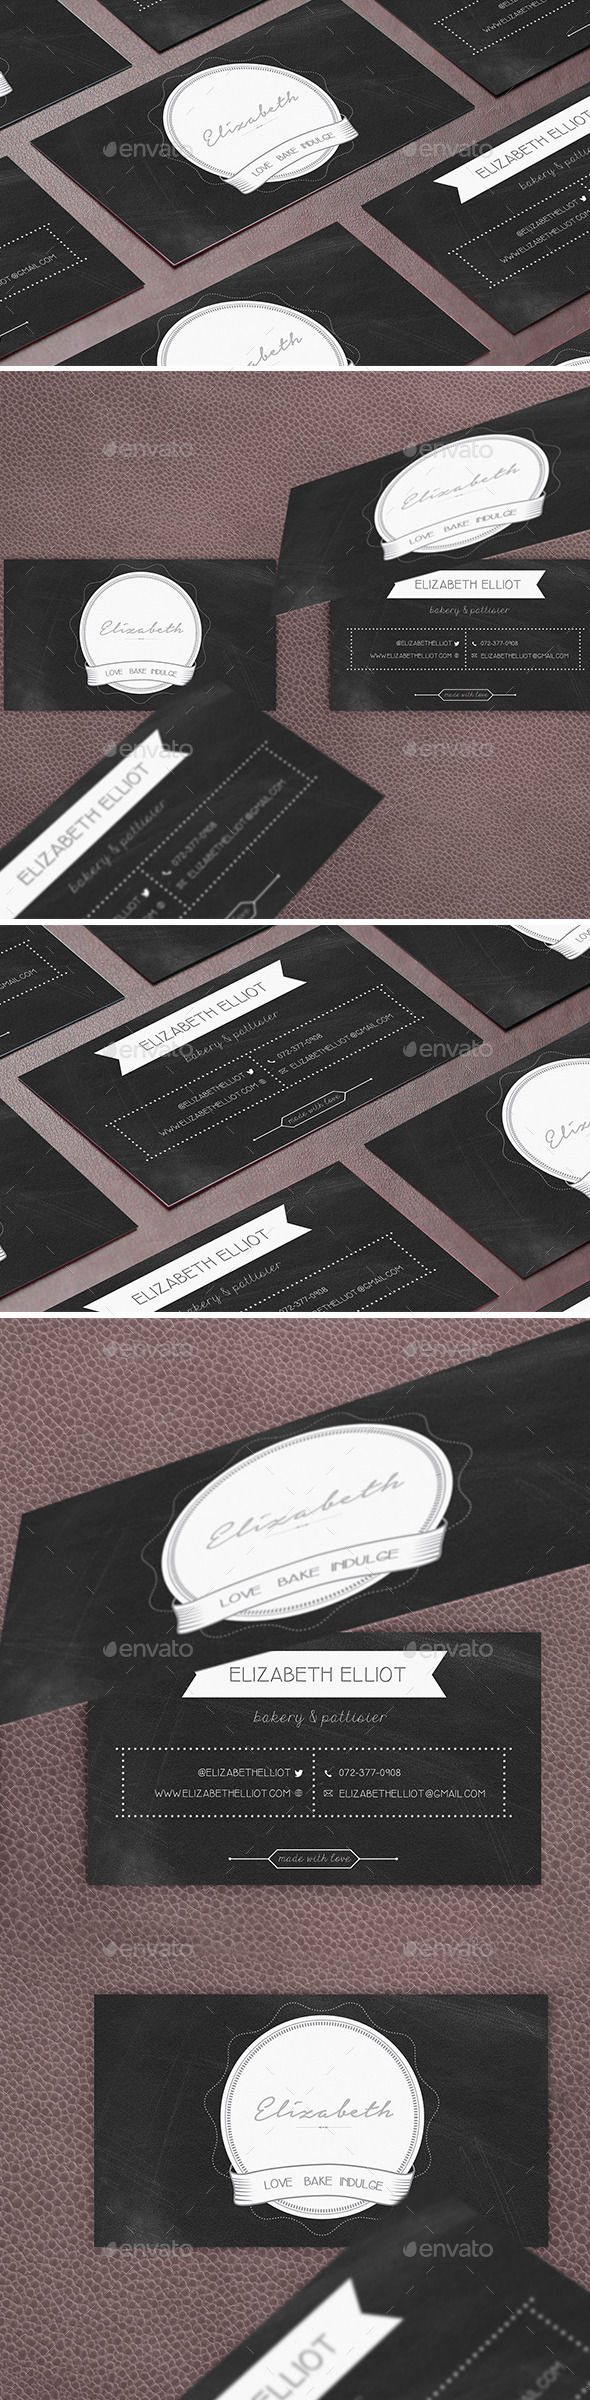 Business Card Template Bakery